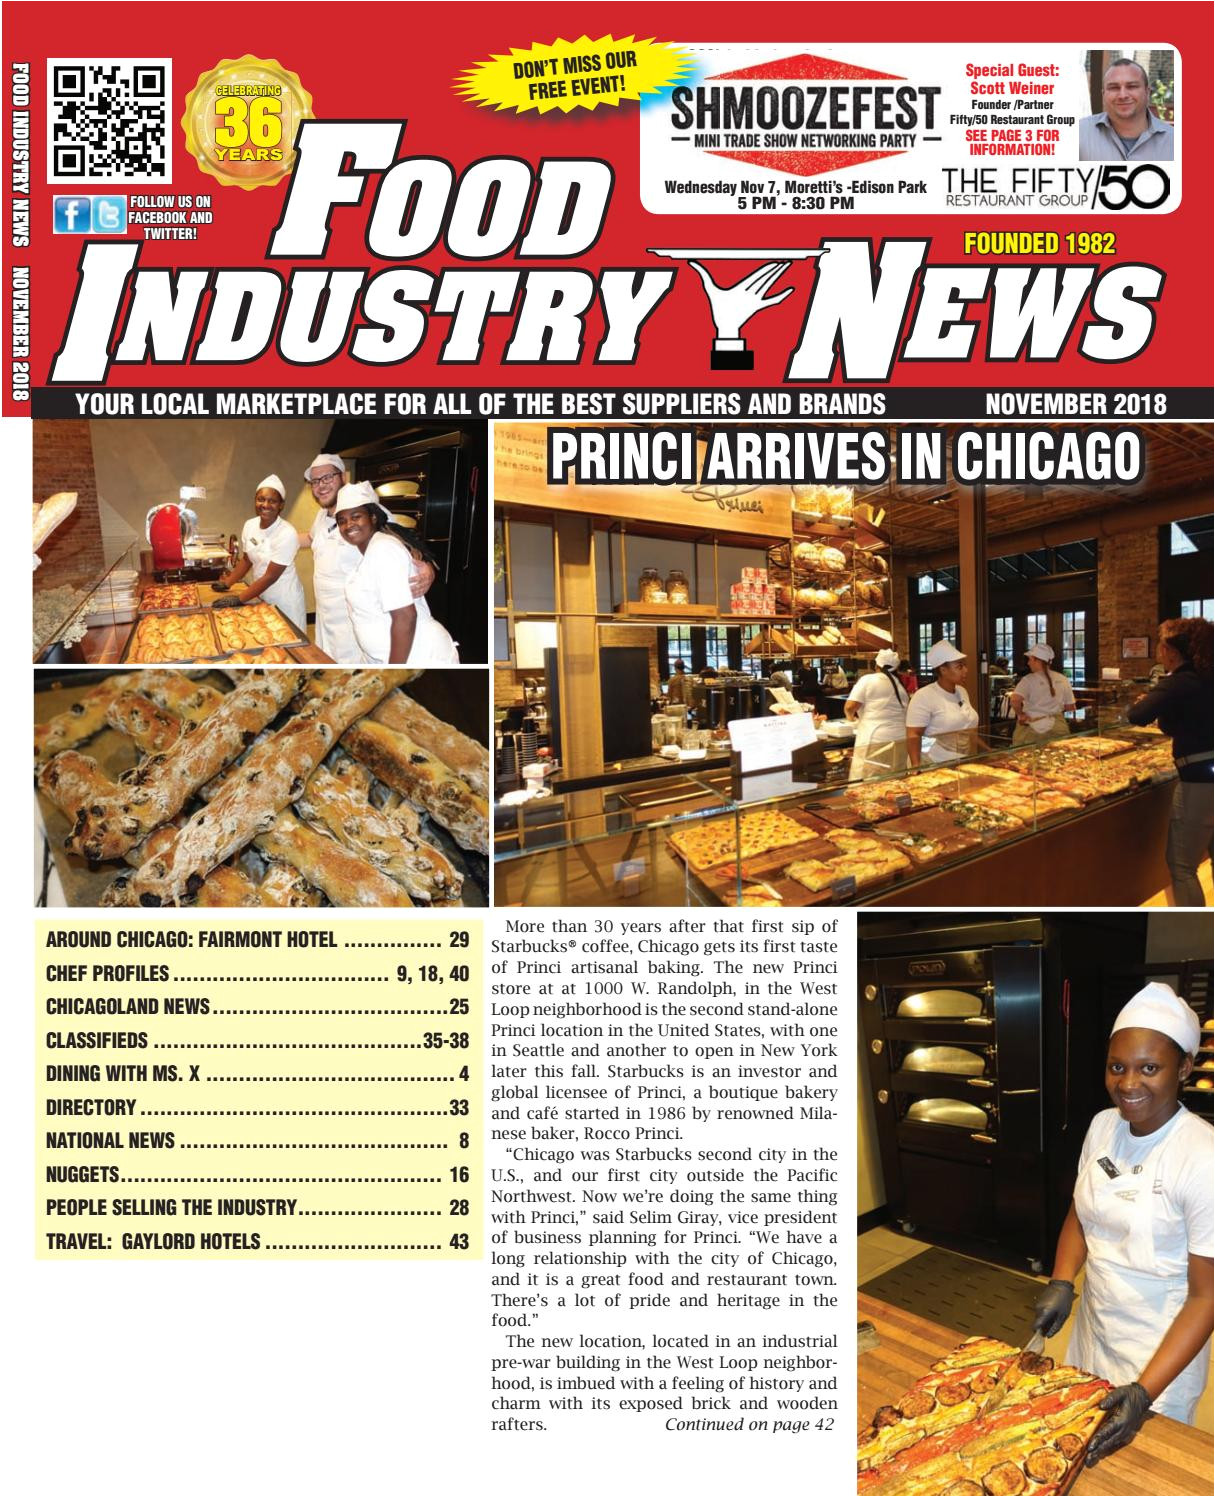 See Thru Kitchen Near 60644 Food Industry News November 2018 Web Edition by Foodindustrynews issuu